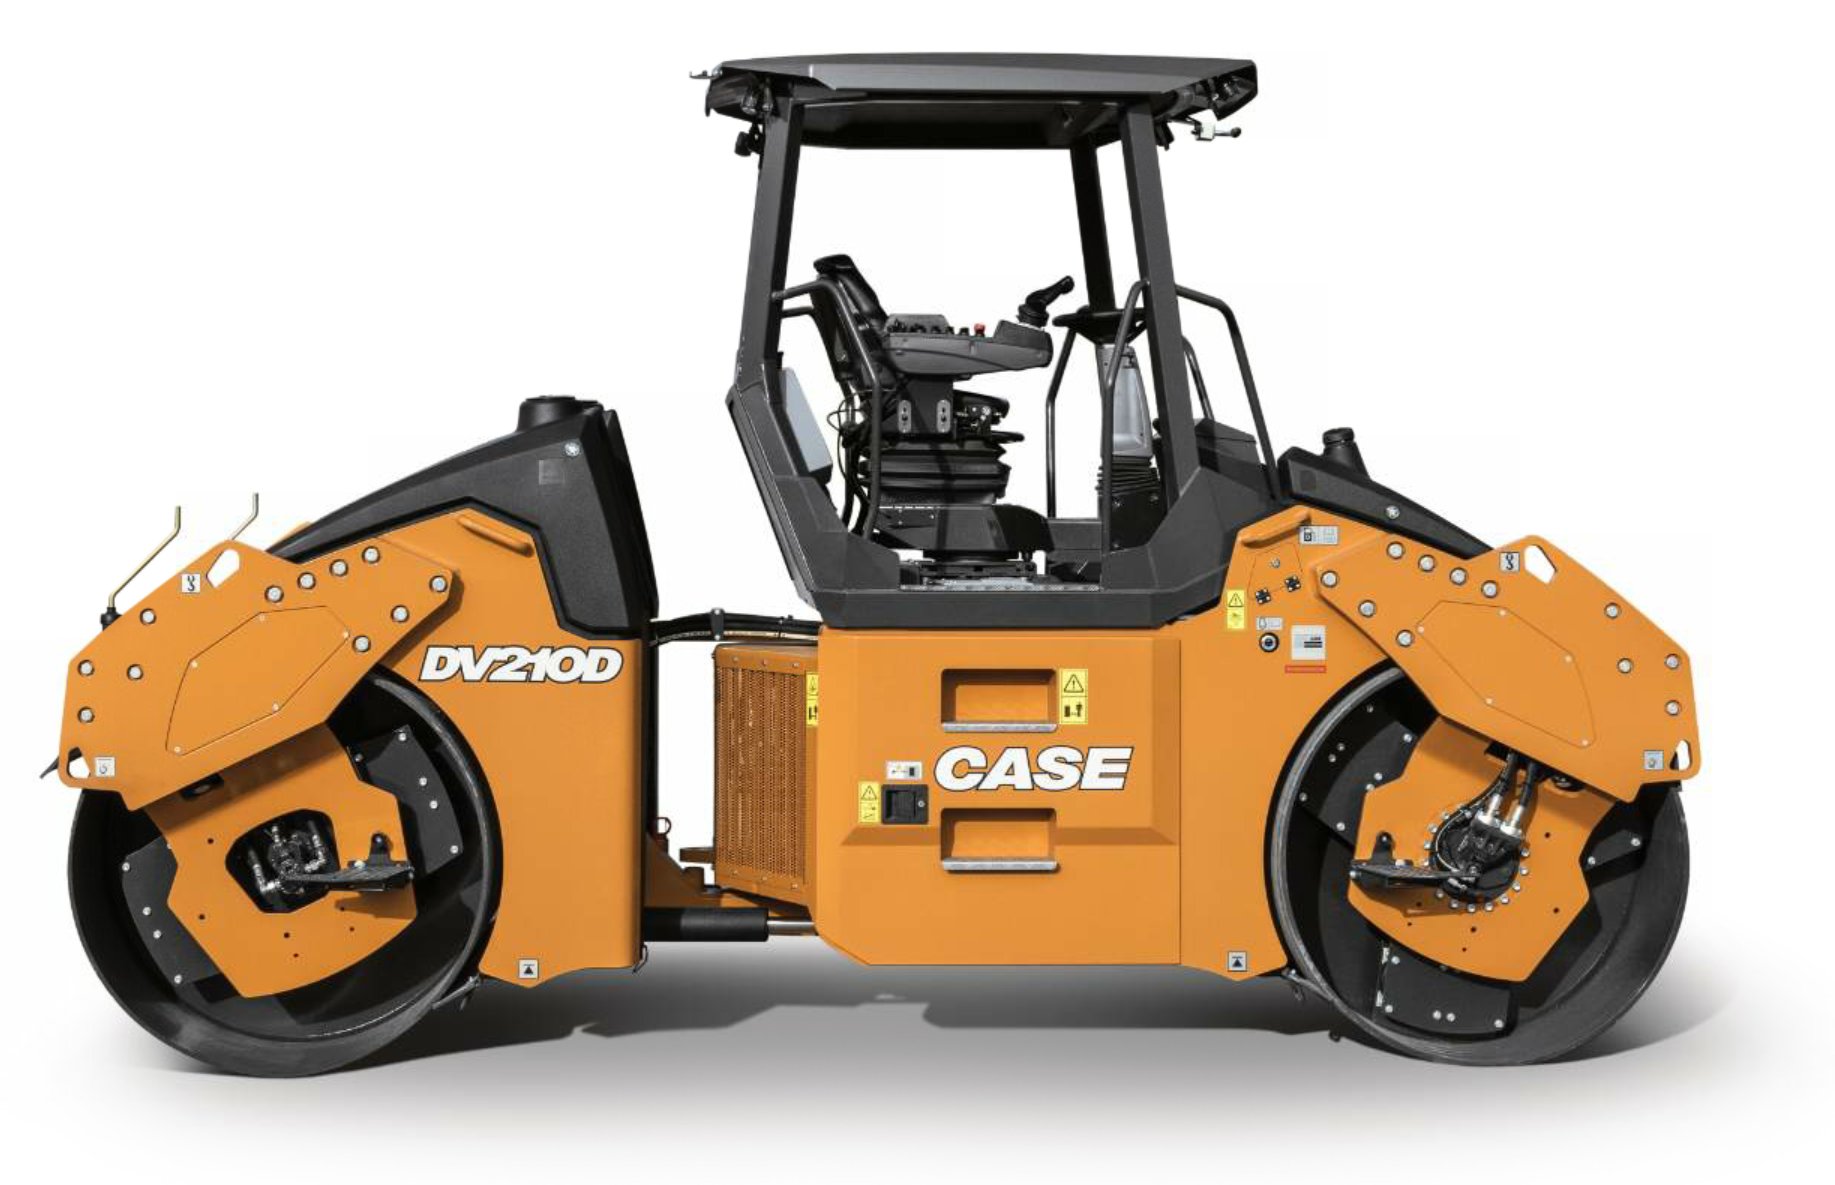 The DV209D and DV210D, pictured here, from Case Construction Equipment are designed for groundline serviceability with large swing-out doors on both sides of the machine for easy access.